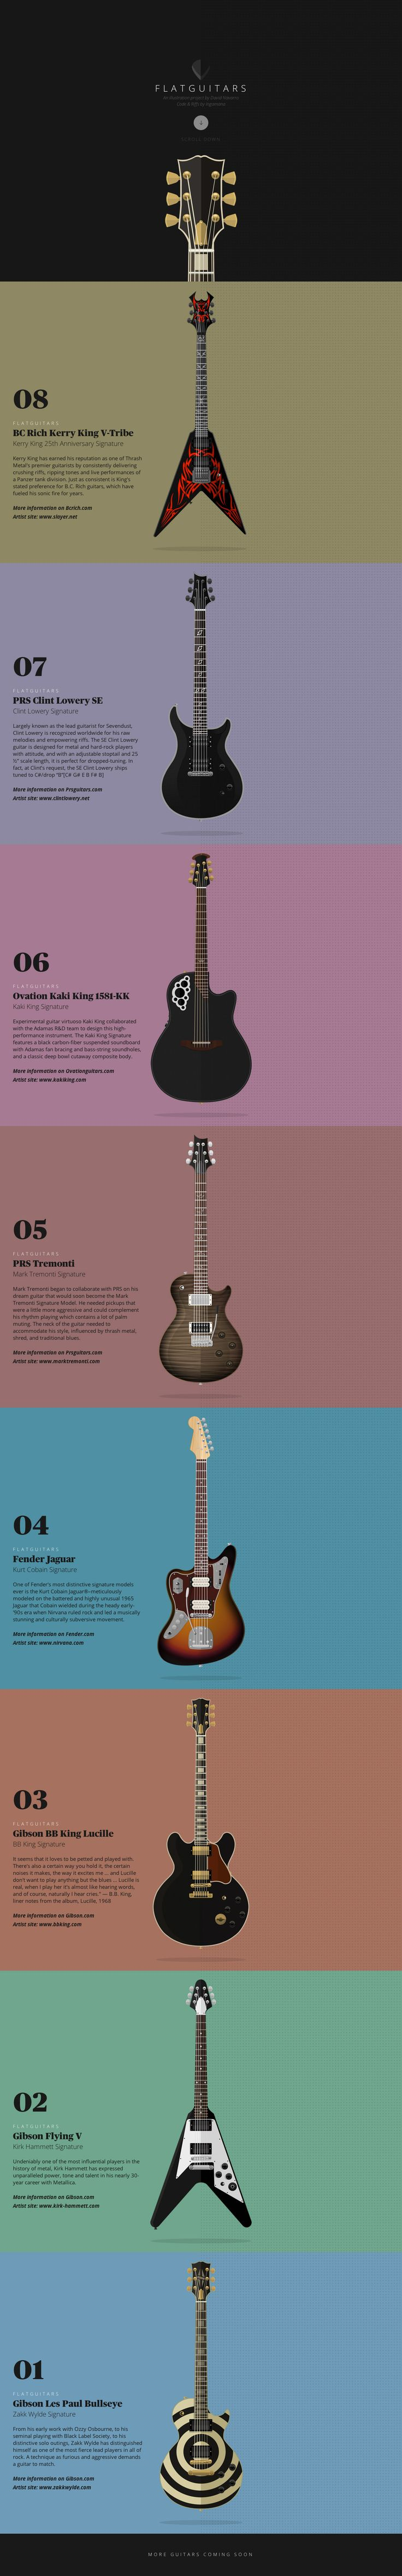 52 best guitar stuff images on pinterest music advertising and